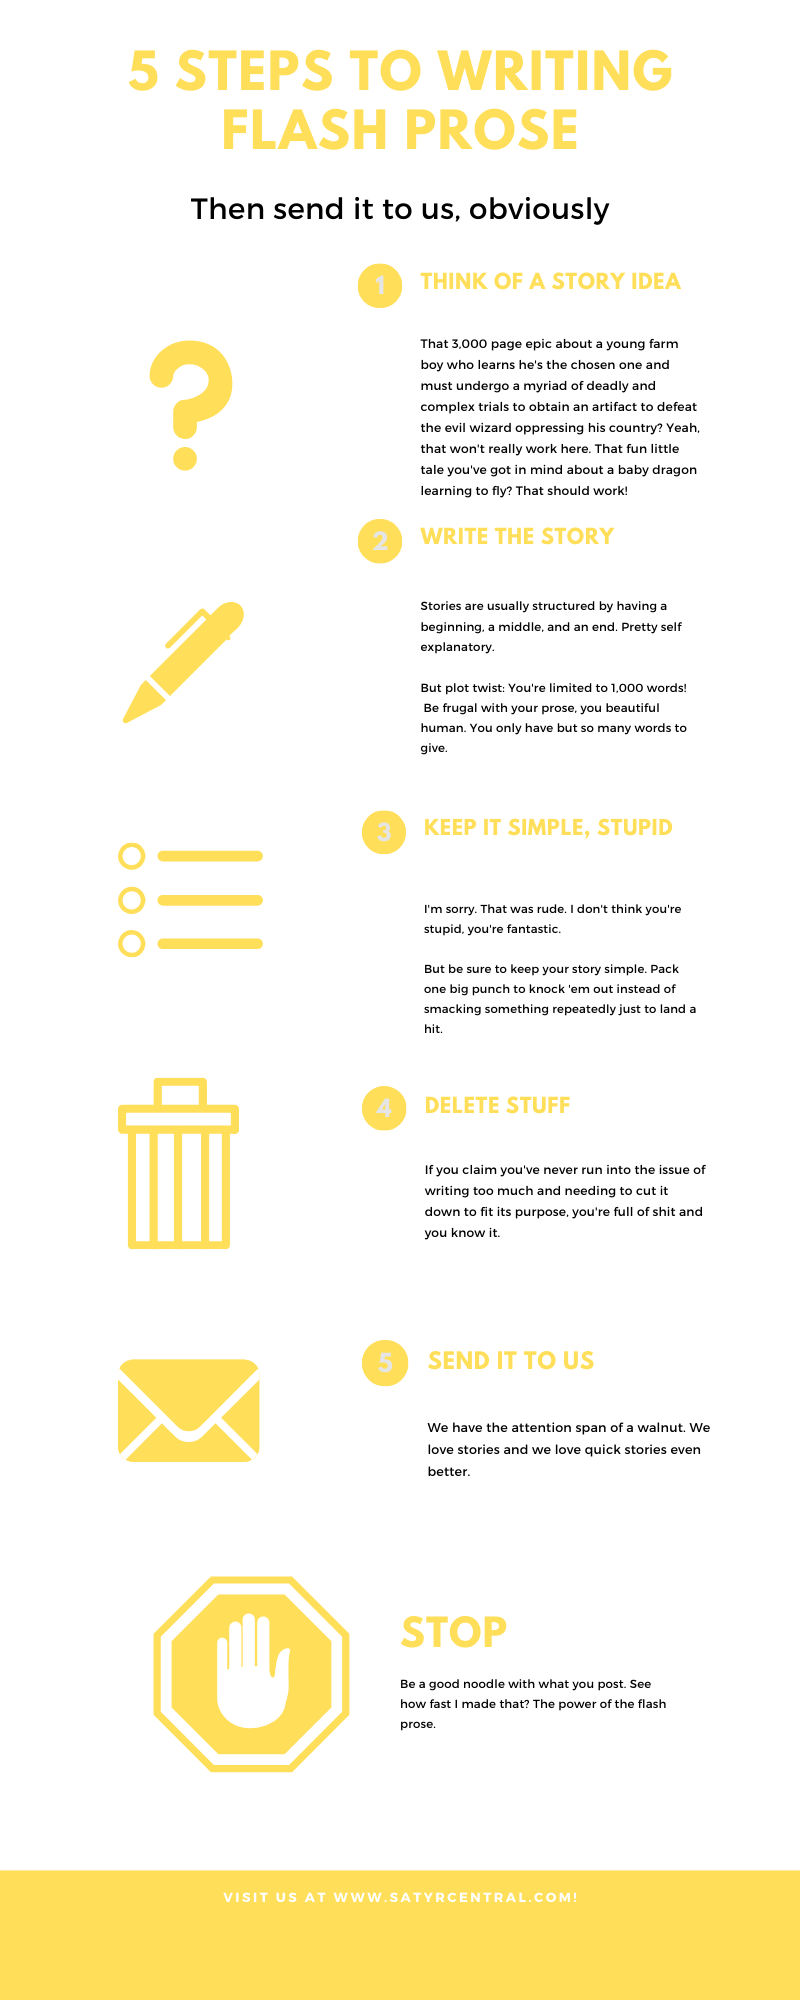 Infographic: How to Write Flash Prose